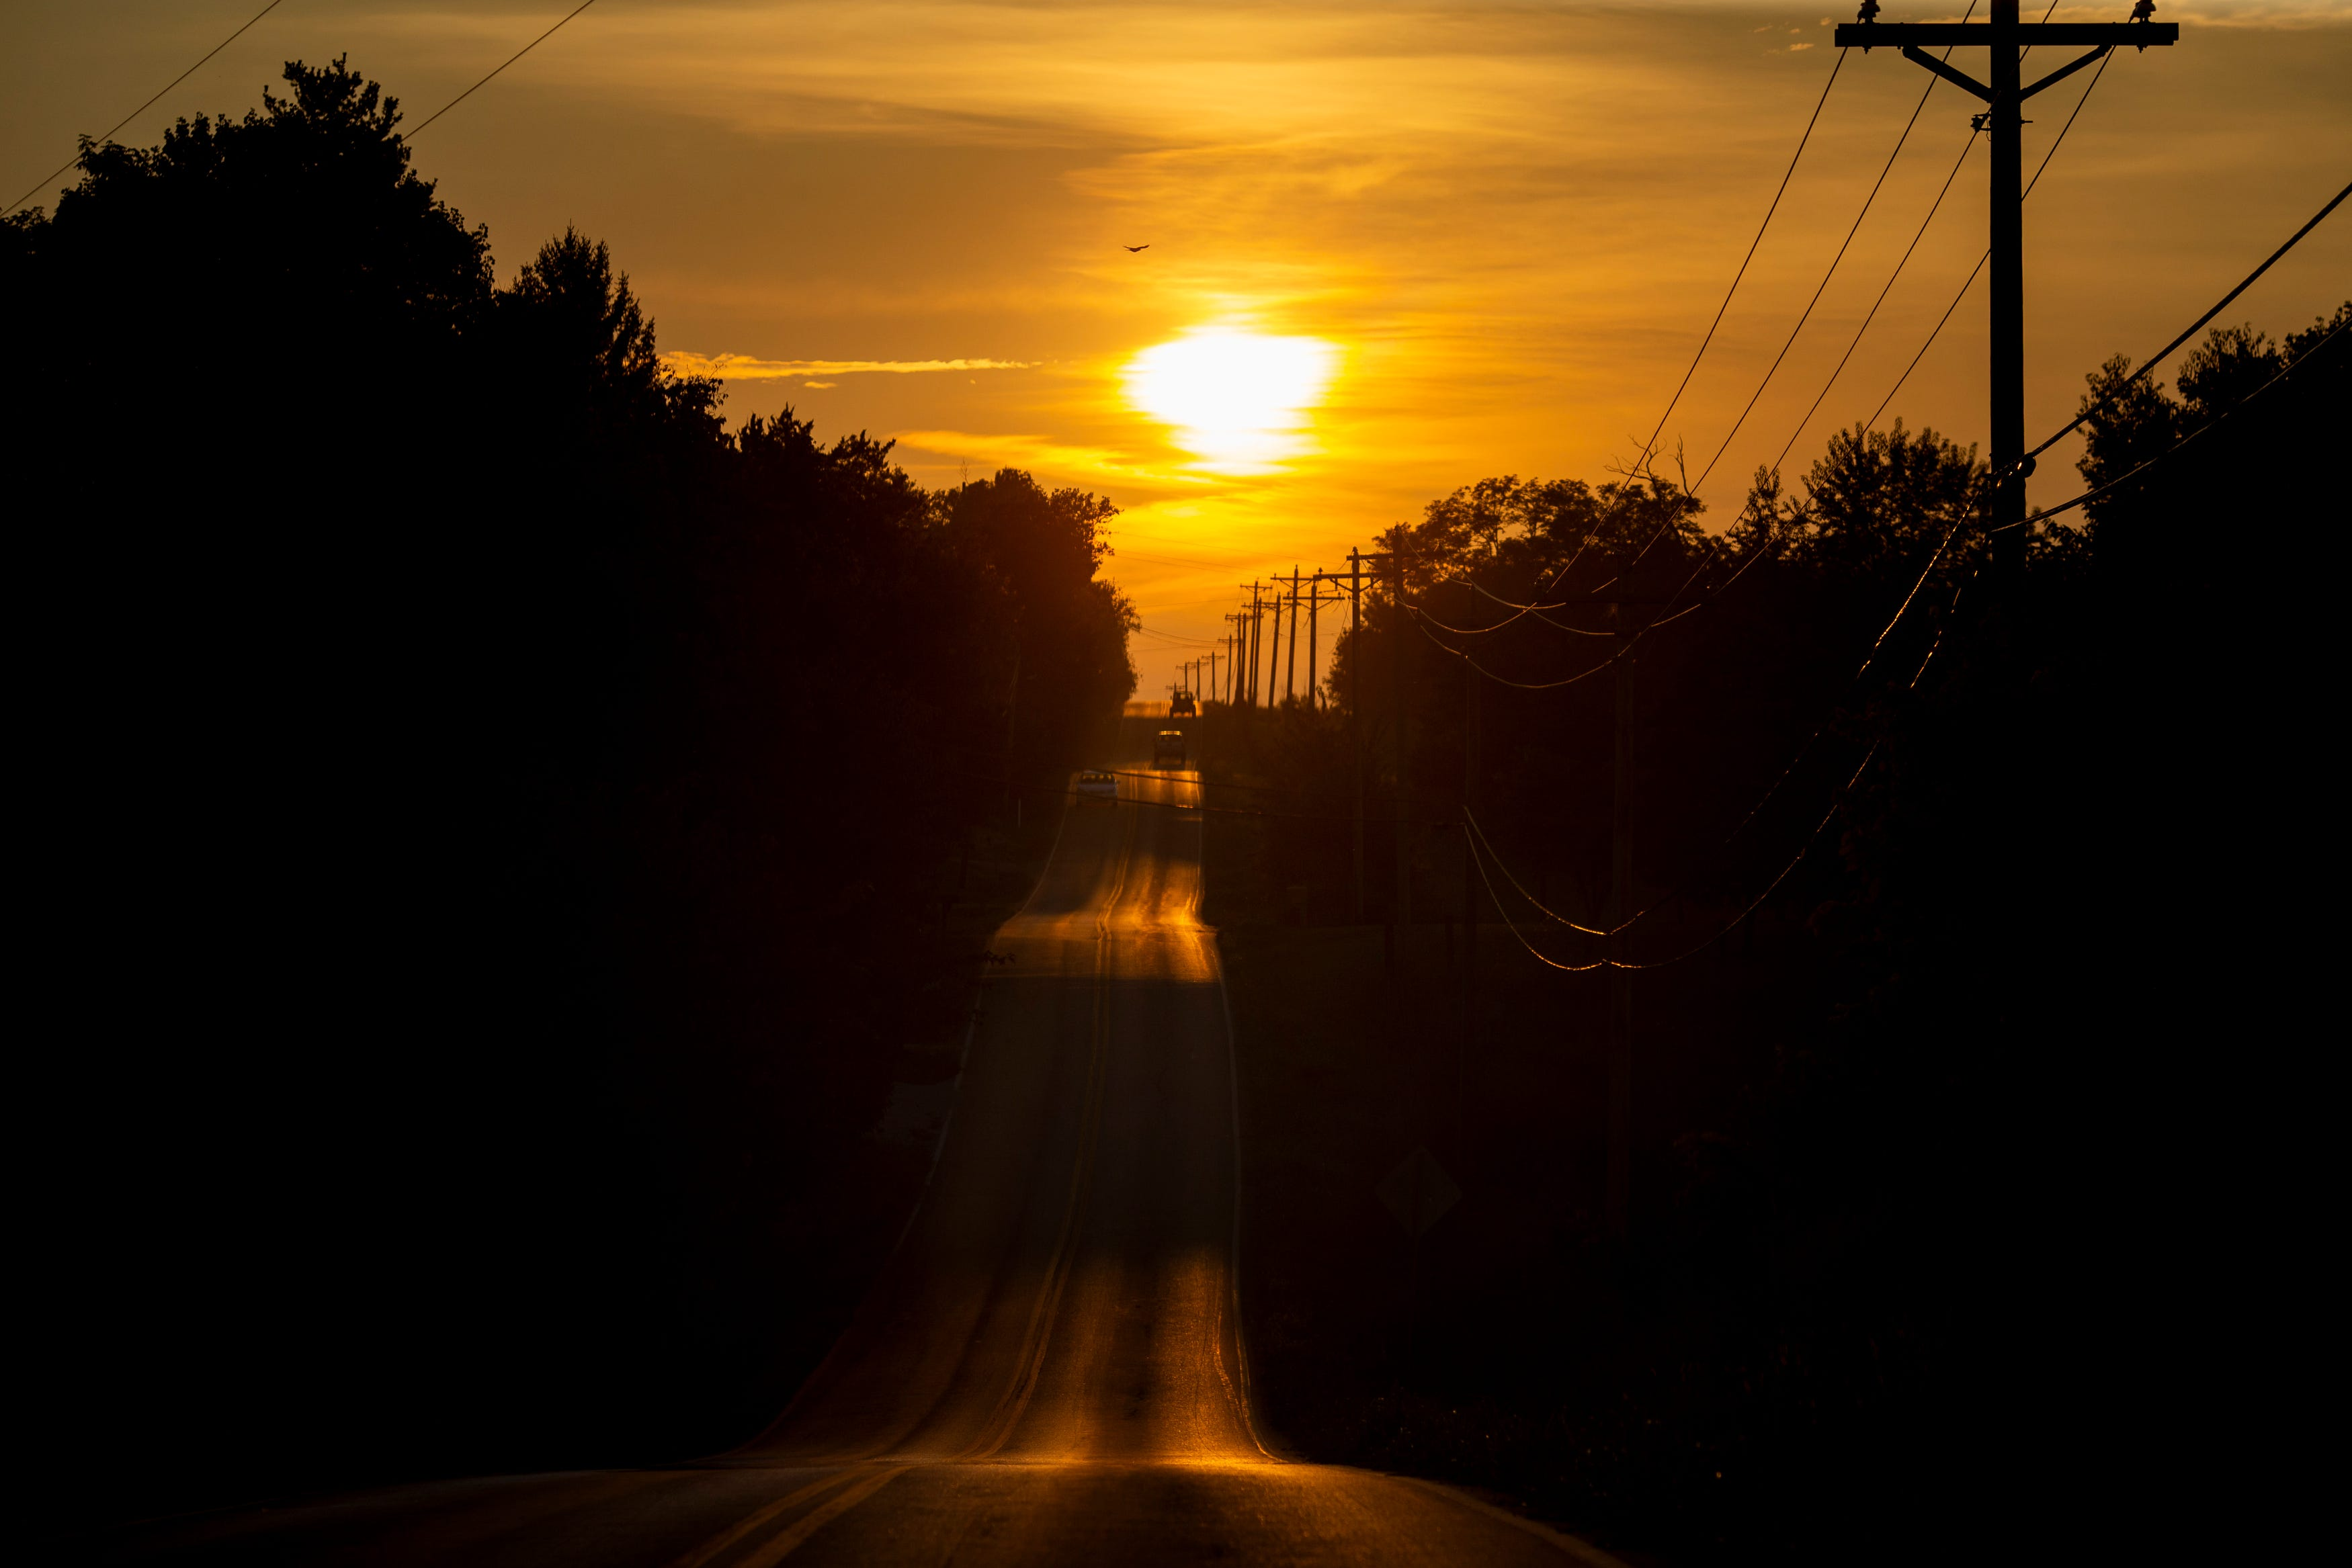 Vehicles travel in Harrison County, Ky., as the sun sets on Wednesday, August 25, 2021.